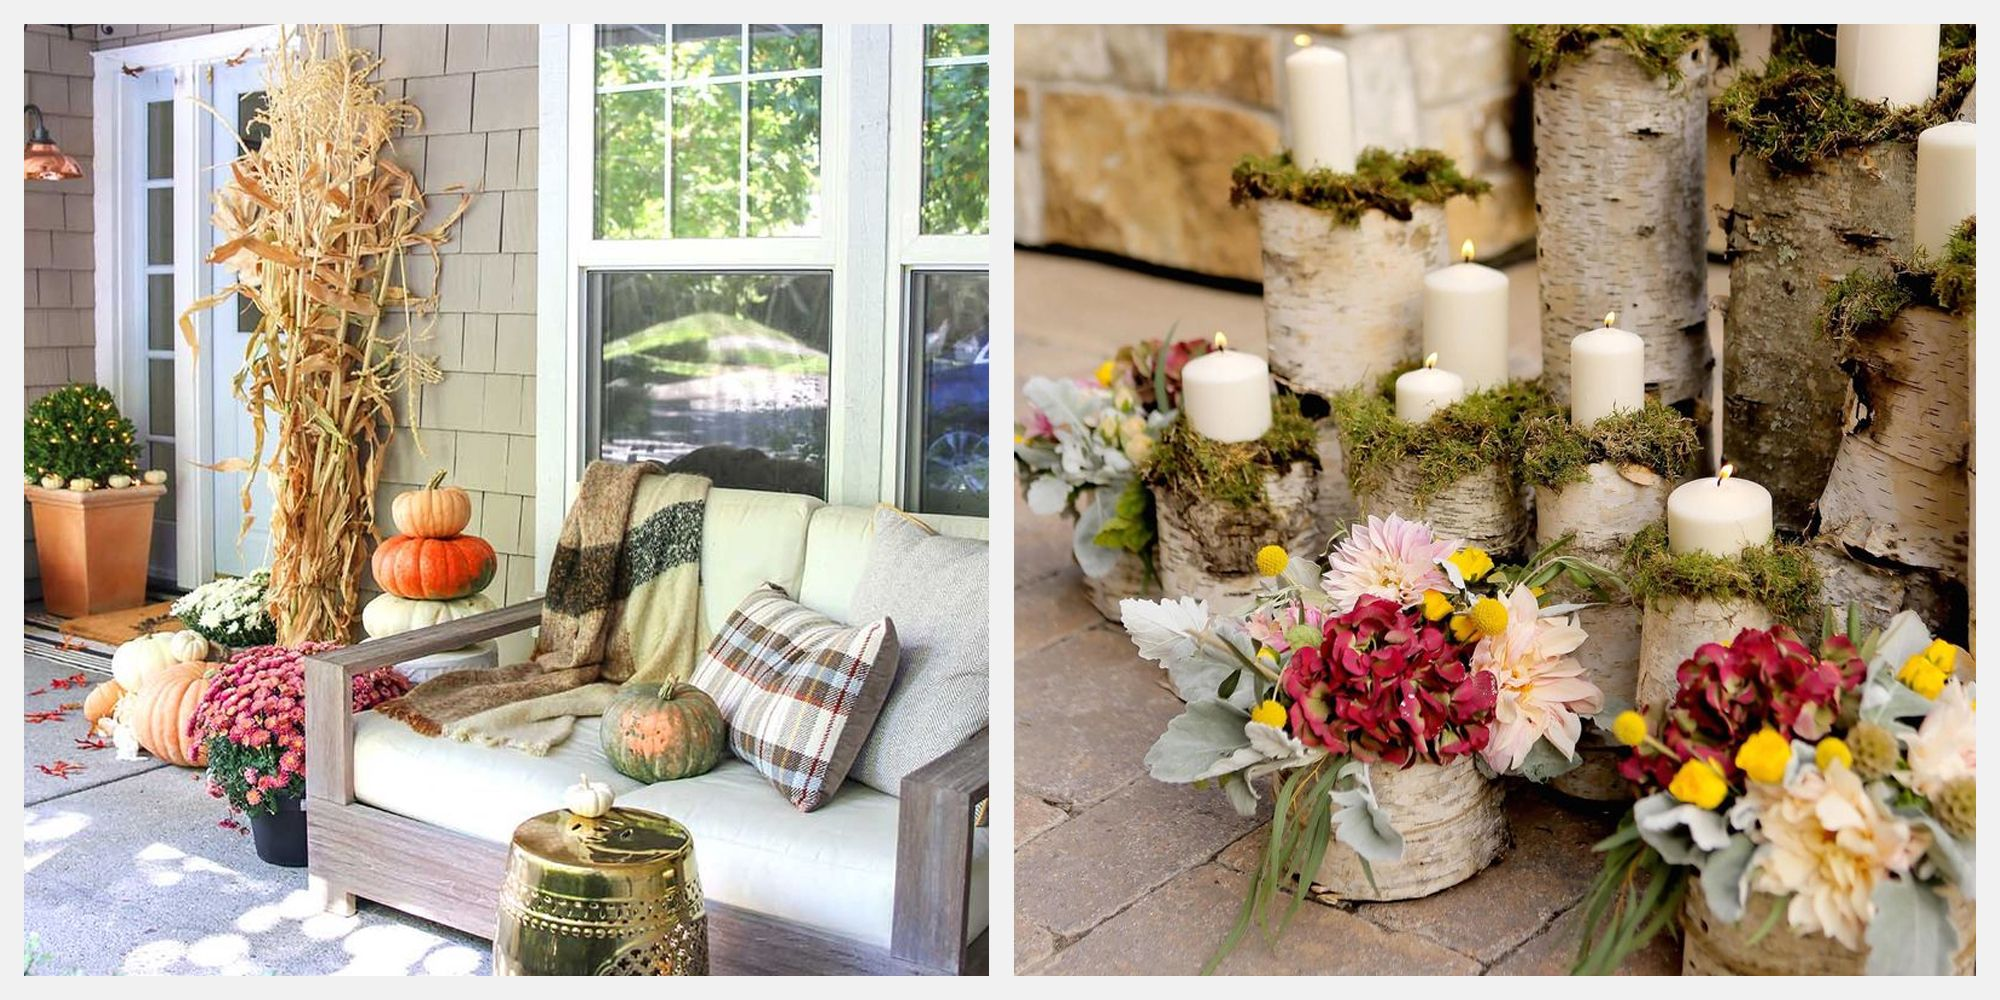 15 Elegant Ways to Dress Up Your Porch for Fall